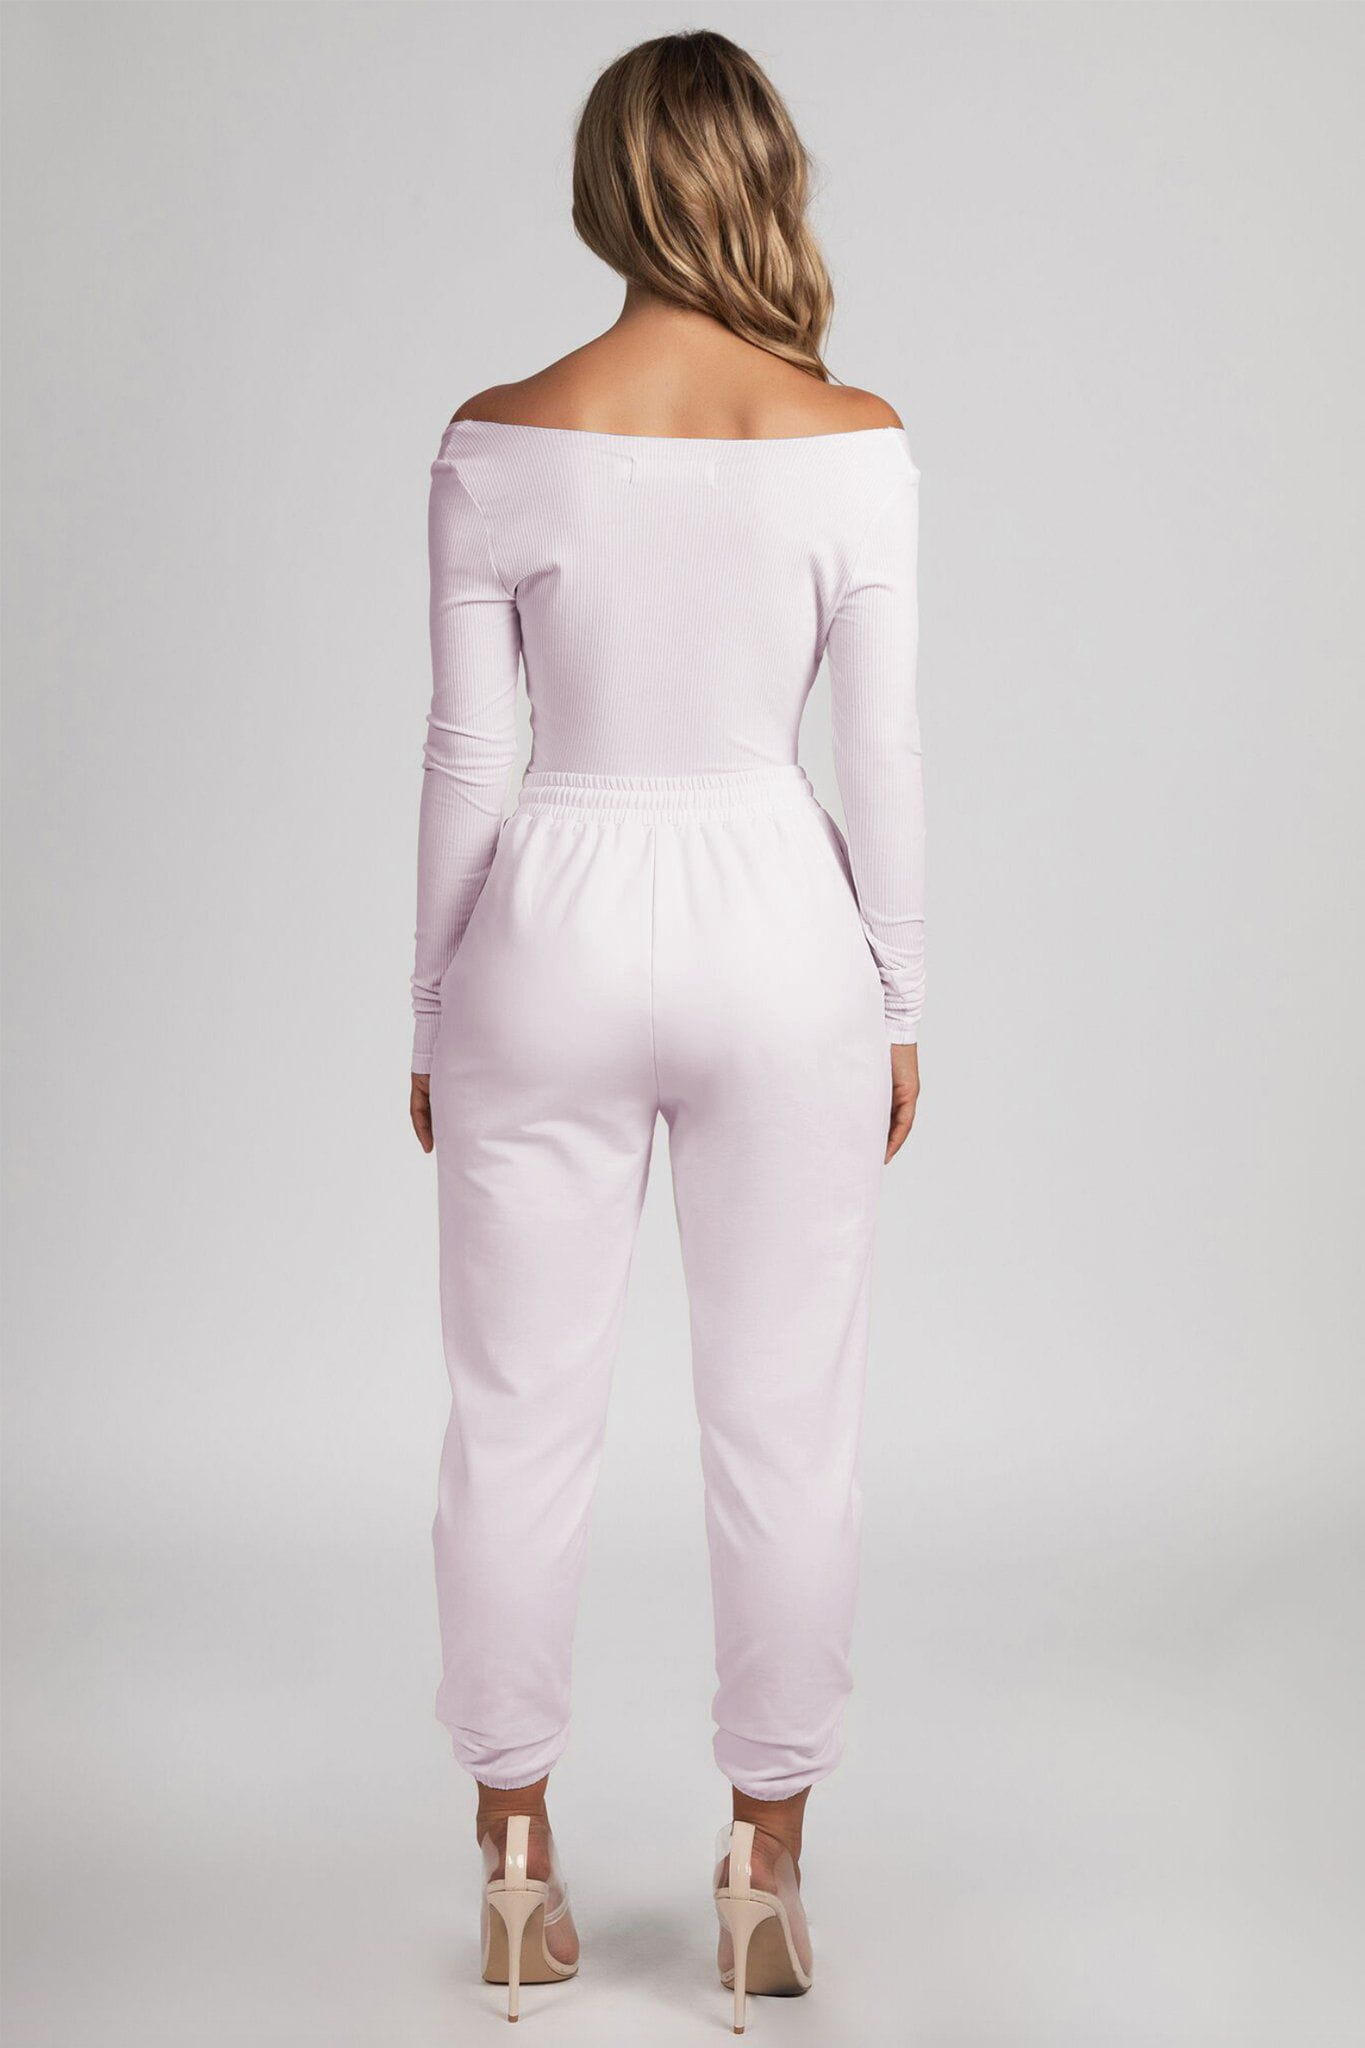 Malene V-Neck Ribbed Long Sleeve Bodysuit - Baby Pink - MESHKI